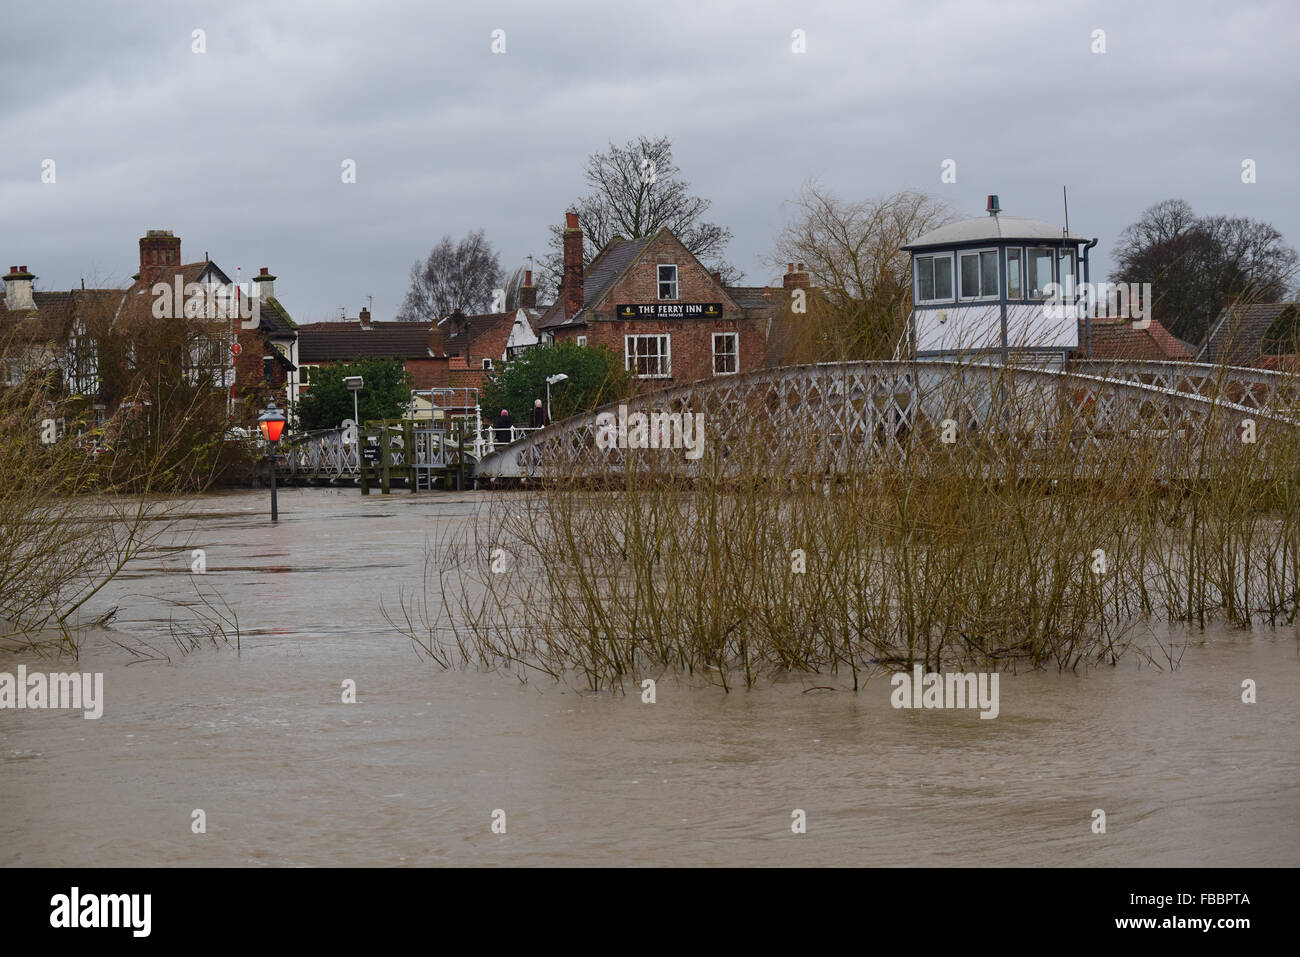 Cawood Bridge, Yorkshire, UK. 30th Dec, 2015 flooded cawoood bridge yorkshire after the river ouse burst its banks - Stock Image